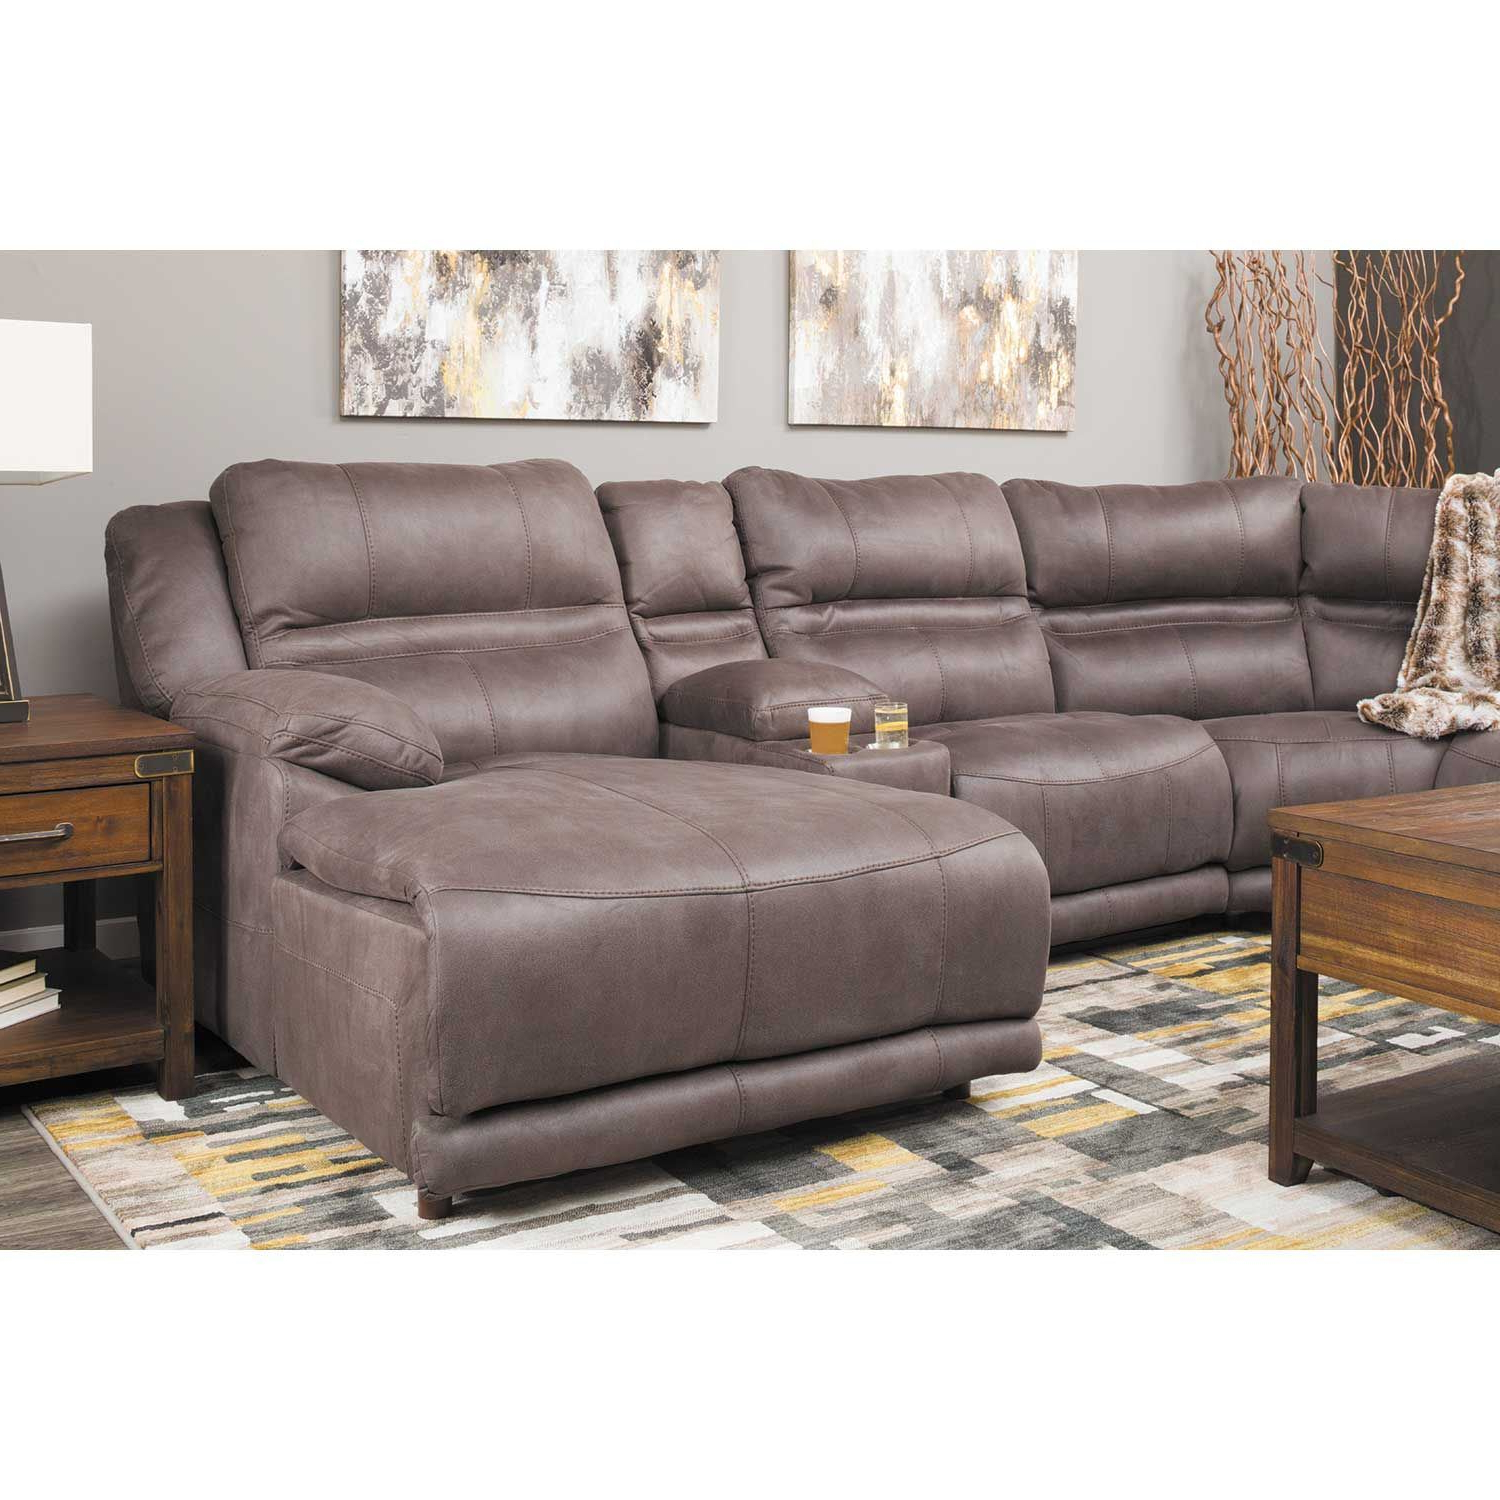 Most Popular Jackson 6 Piece Power Reclining Sectionals Intended For Braxton 6 Piece Power Reclining Sectional With Adjustable Headrest (View 10 of 20)